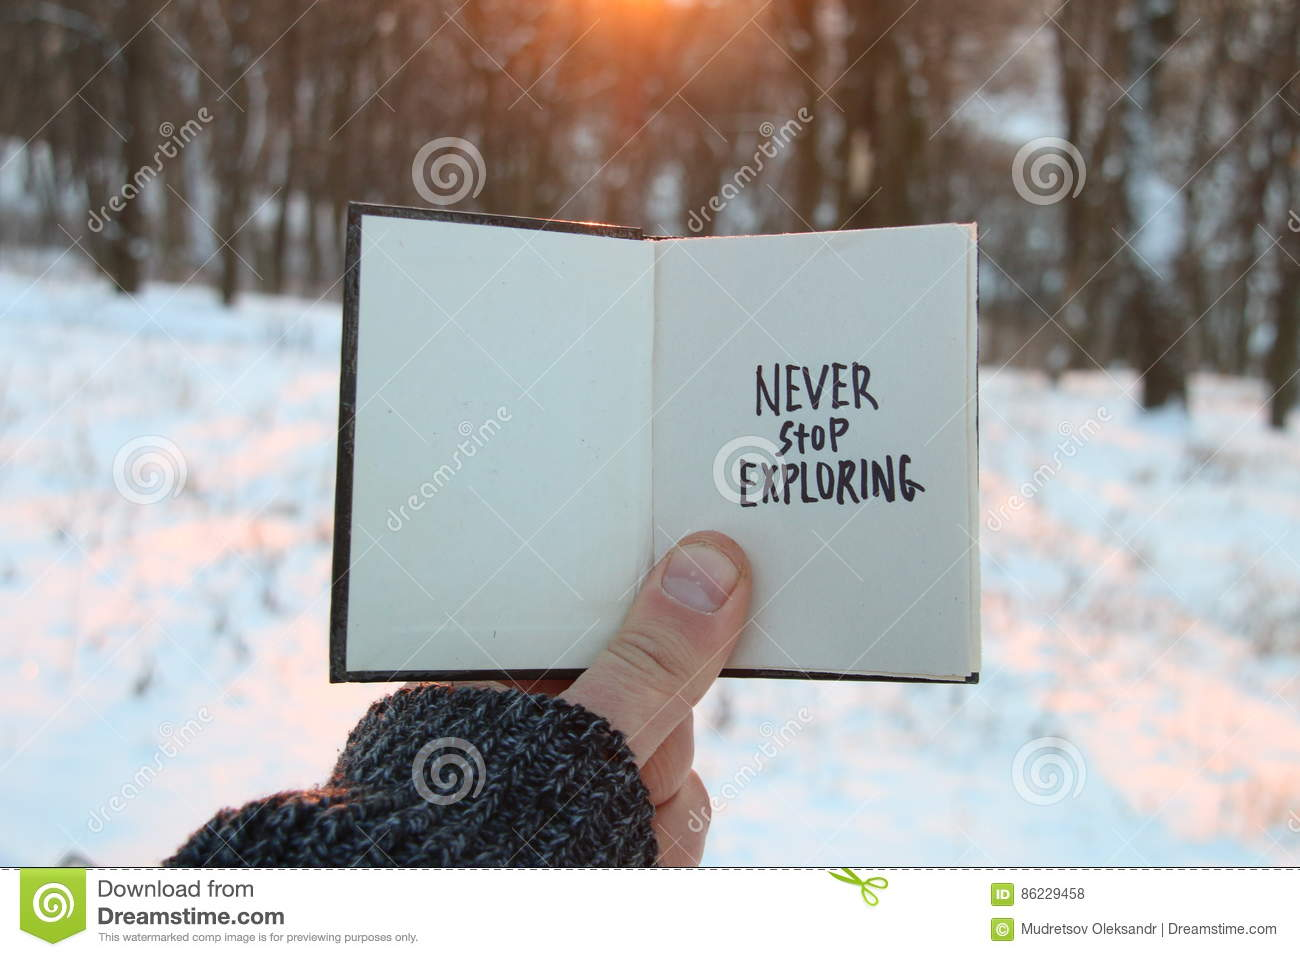 Never stop exploring. Inspirational and motivational quotes. . Book and text.